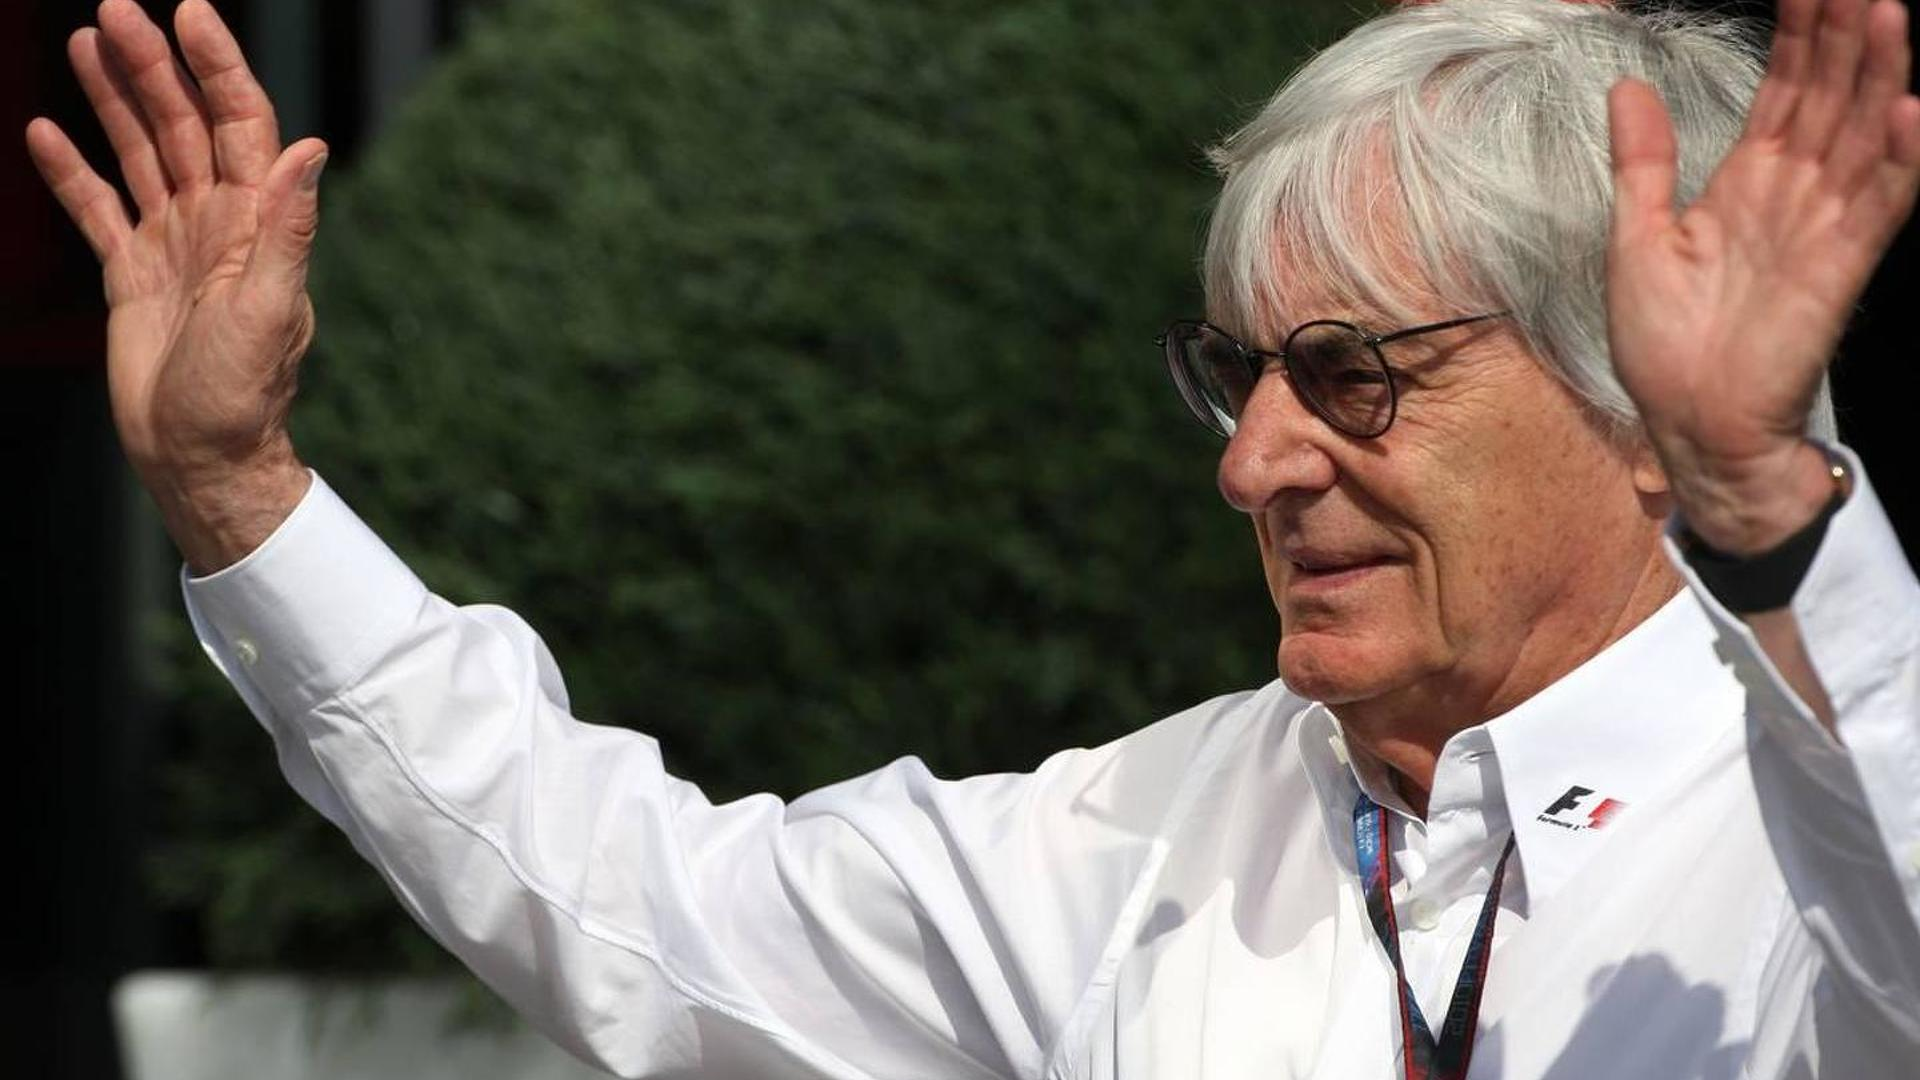 Calendar won't grow beyond 20 races - Ecclestone